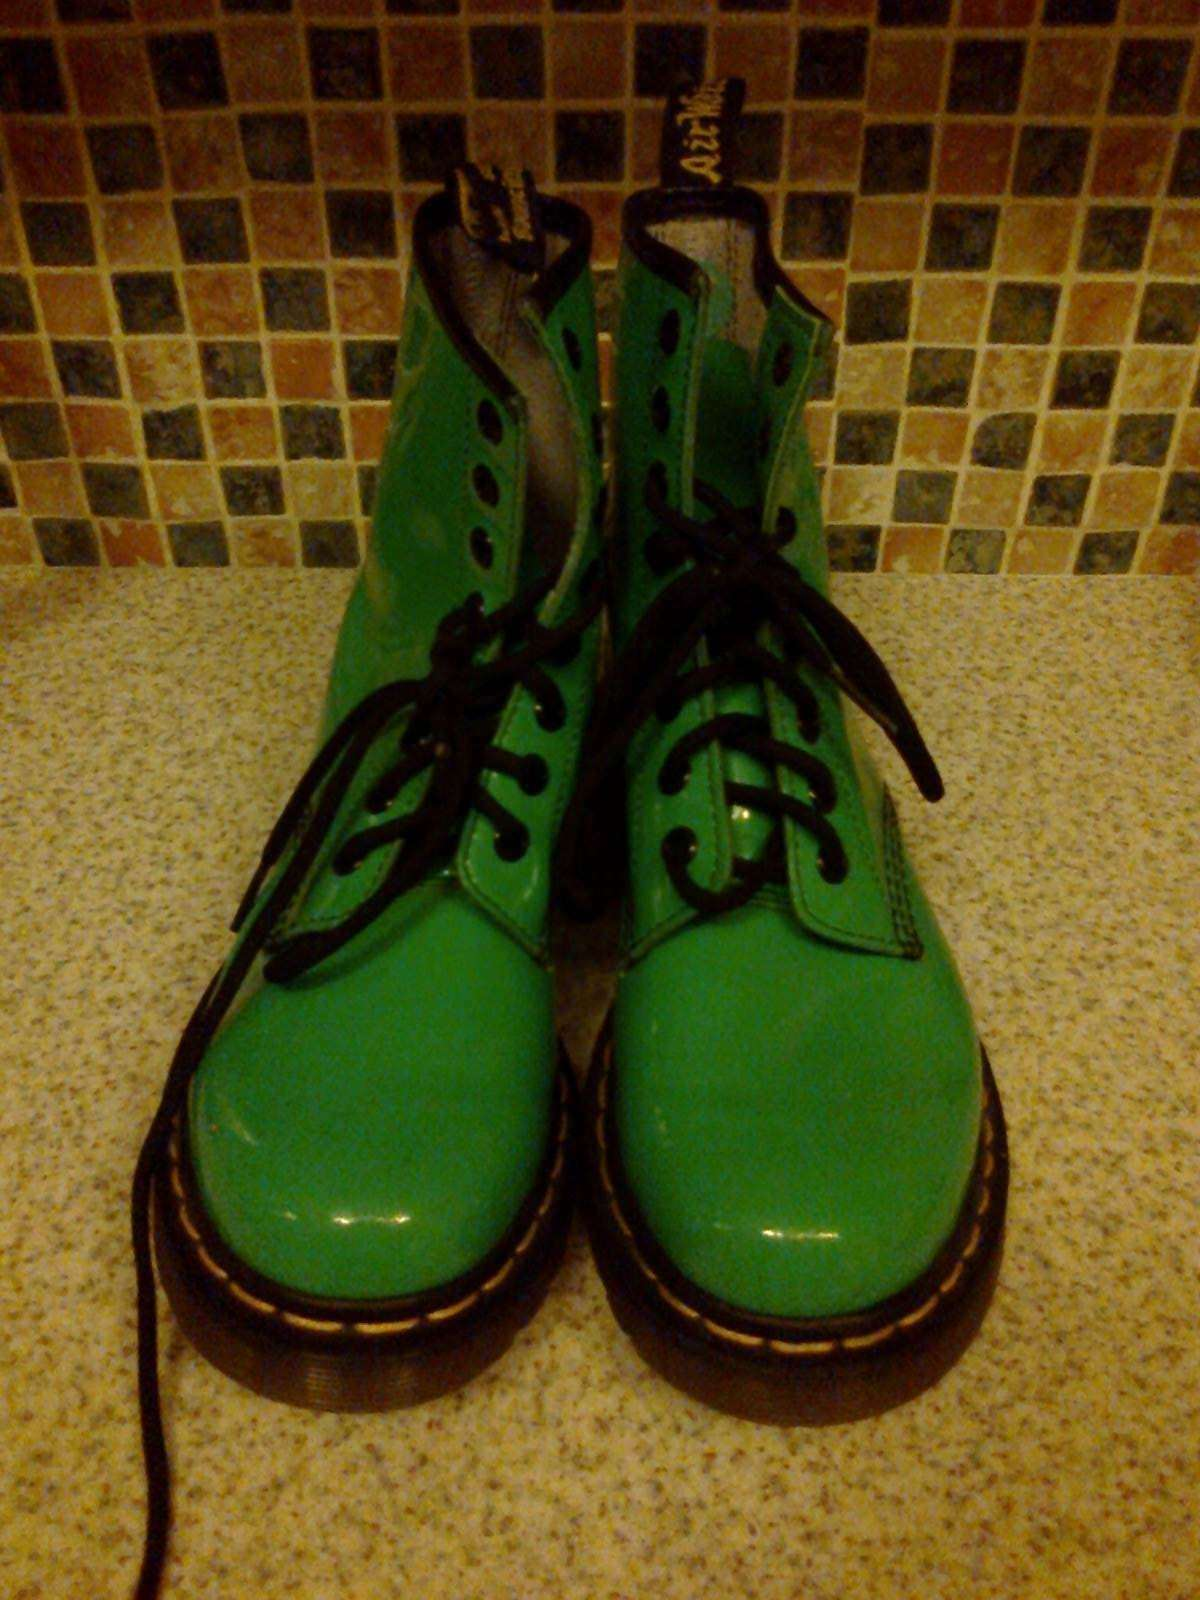 DR MARTENS PATENT AIR WAIR BOUNCING SOLES PATENT MARTENS LEATHER GREEN 8 EYELET Stiefel SIZE 4 60cef6